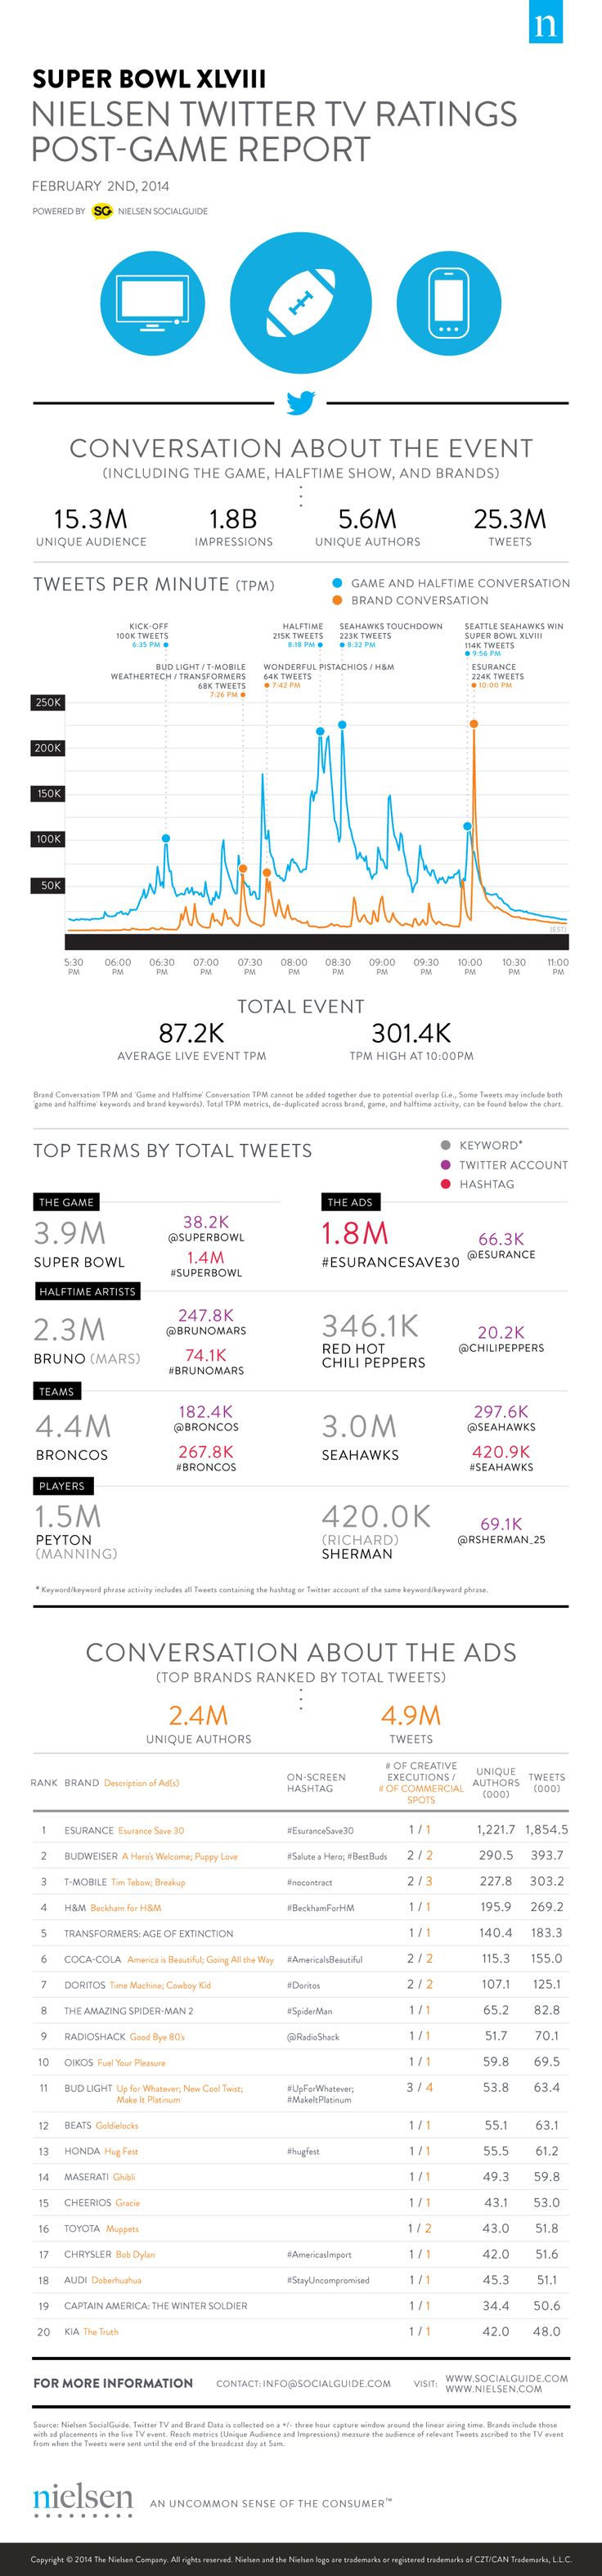 Super Bowl XLVIII: Nielsen Twitter TV Ratings Post-Game Report [INFOGRAPHIC] via Nielsen Social Guide